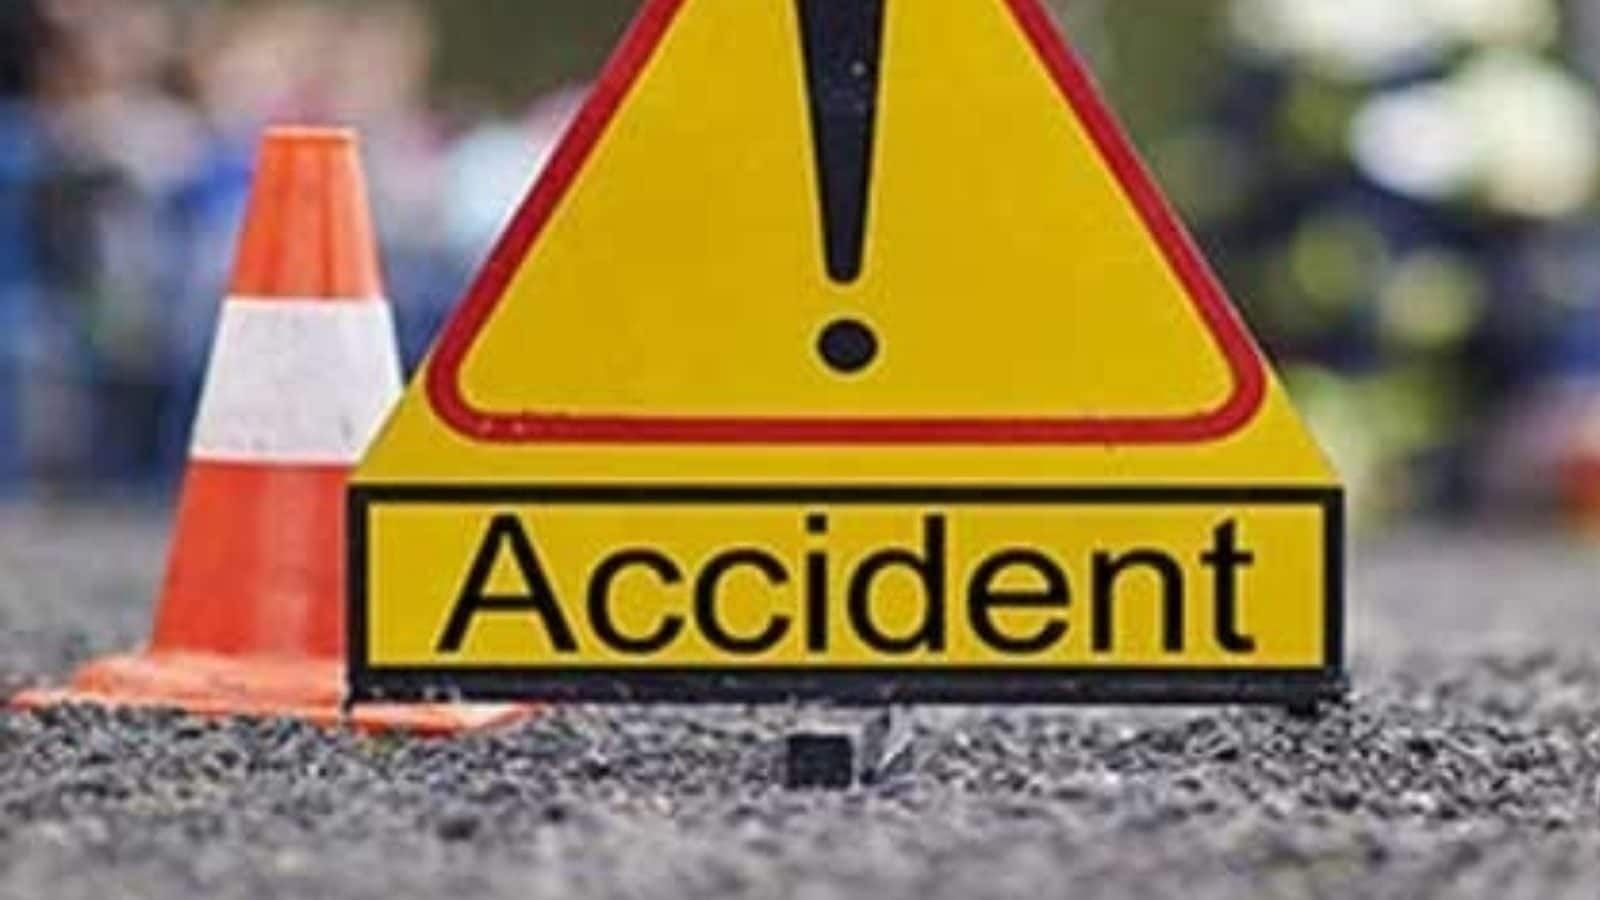 Bus Overturns in MP; 13 Injured, 3 of Them Critical